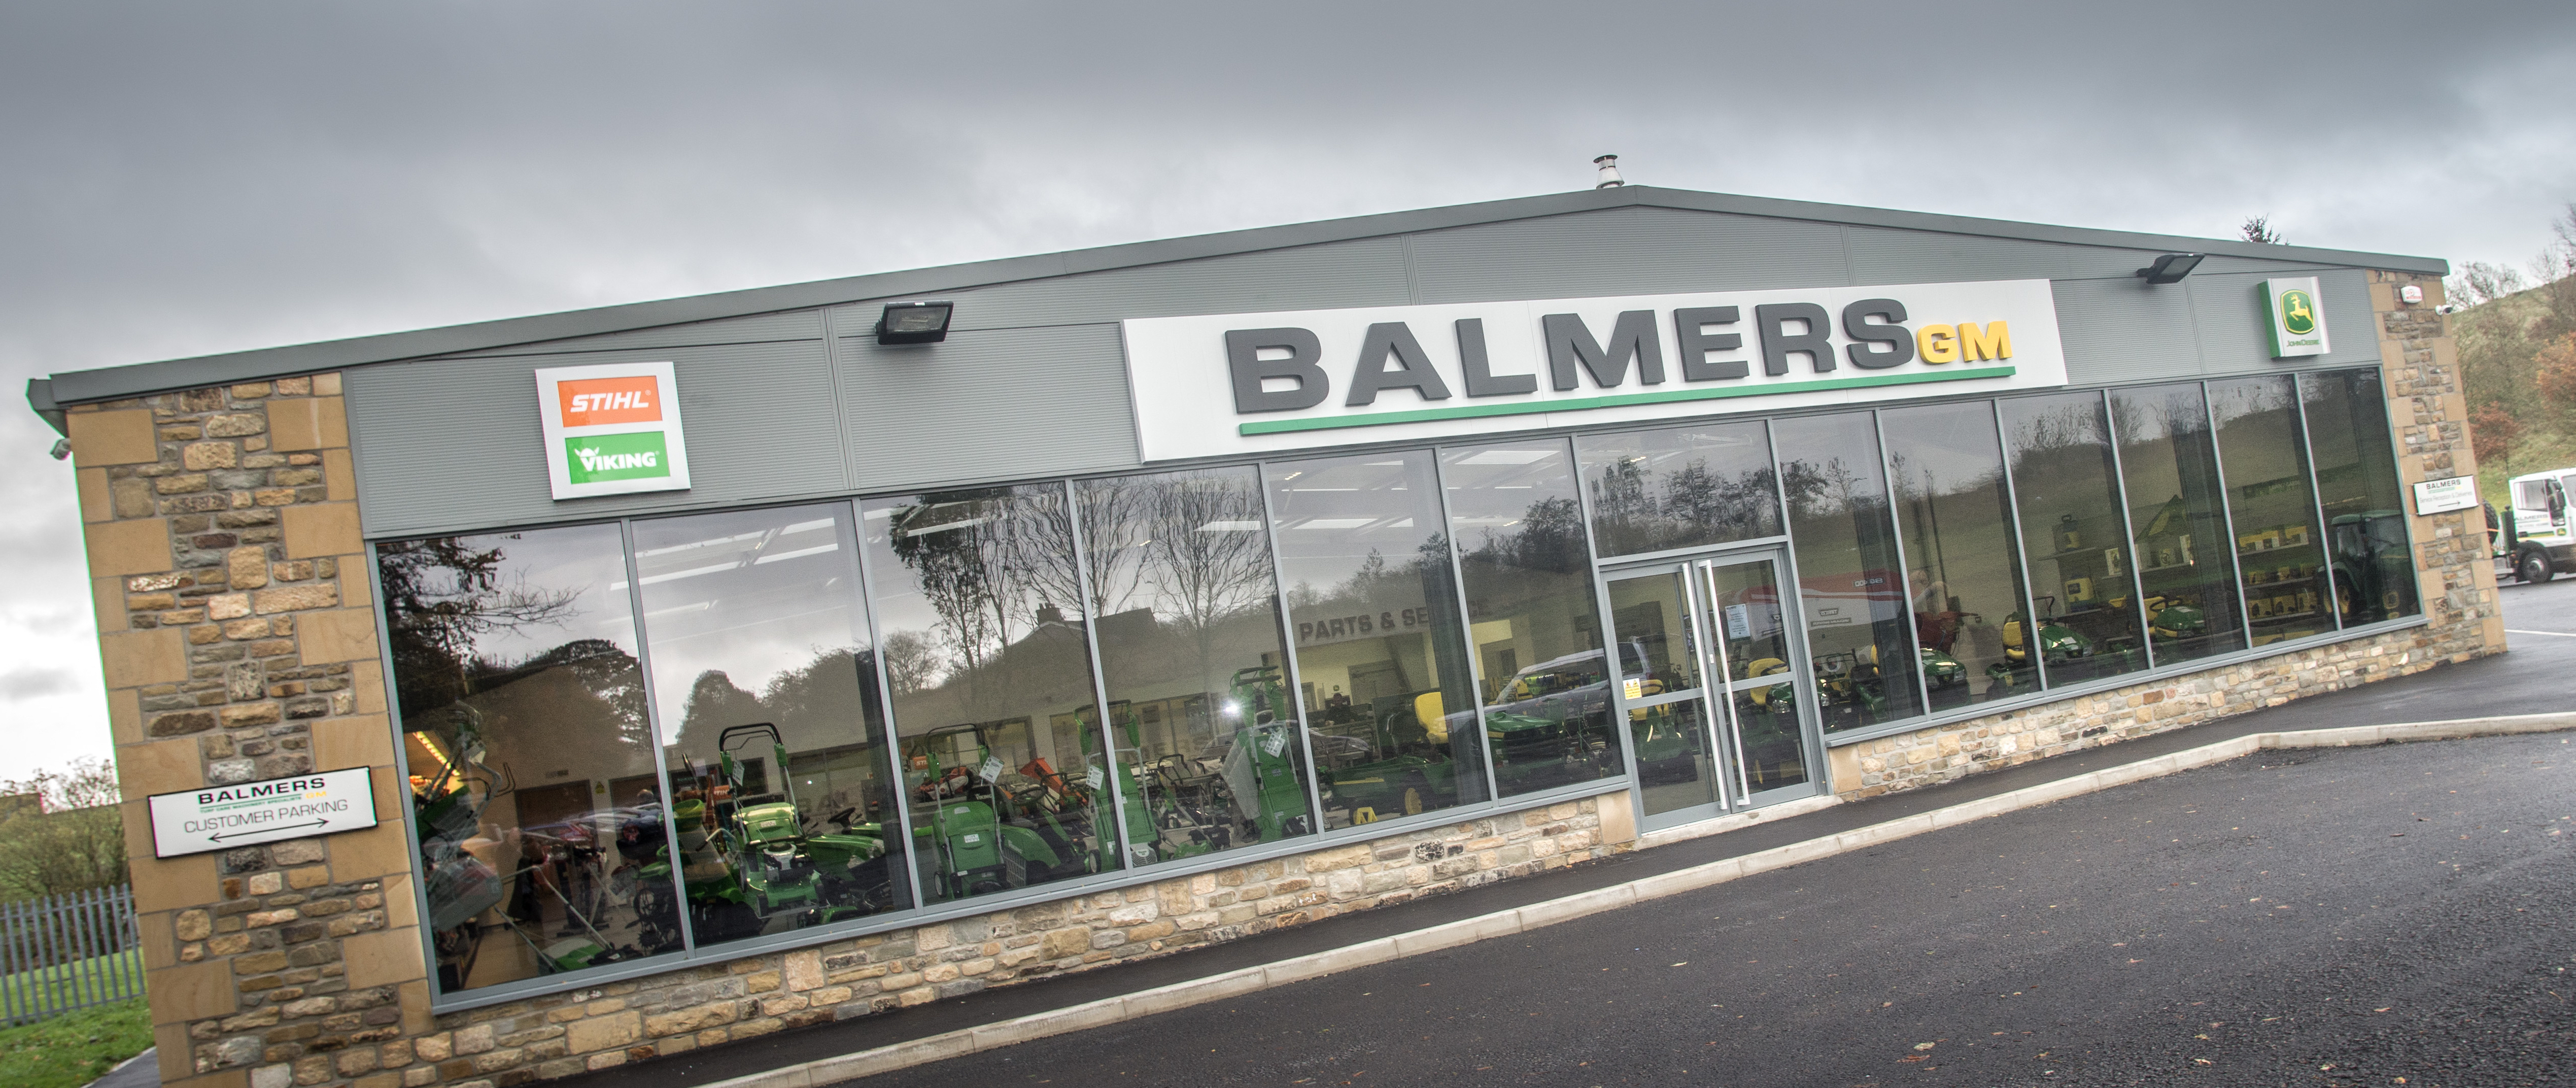 Balmers GM Ltd - Burnley Depot